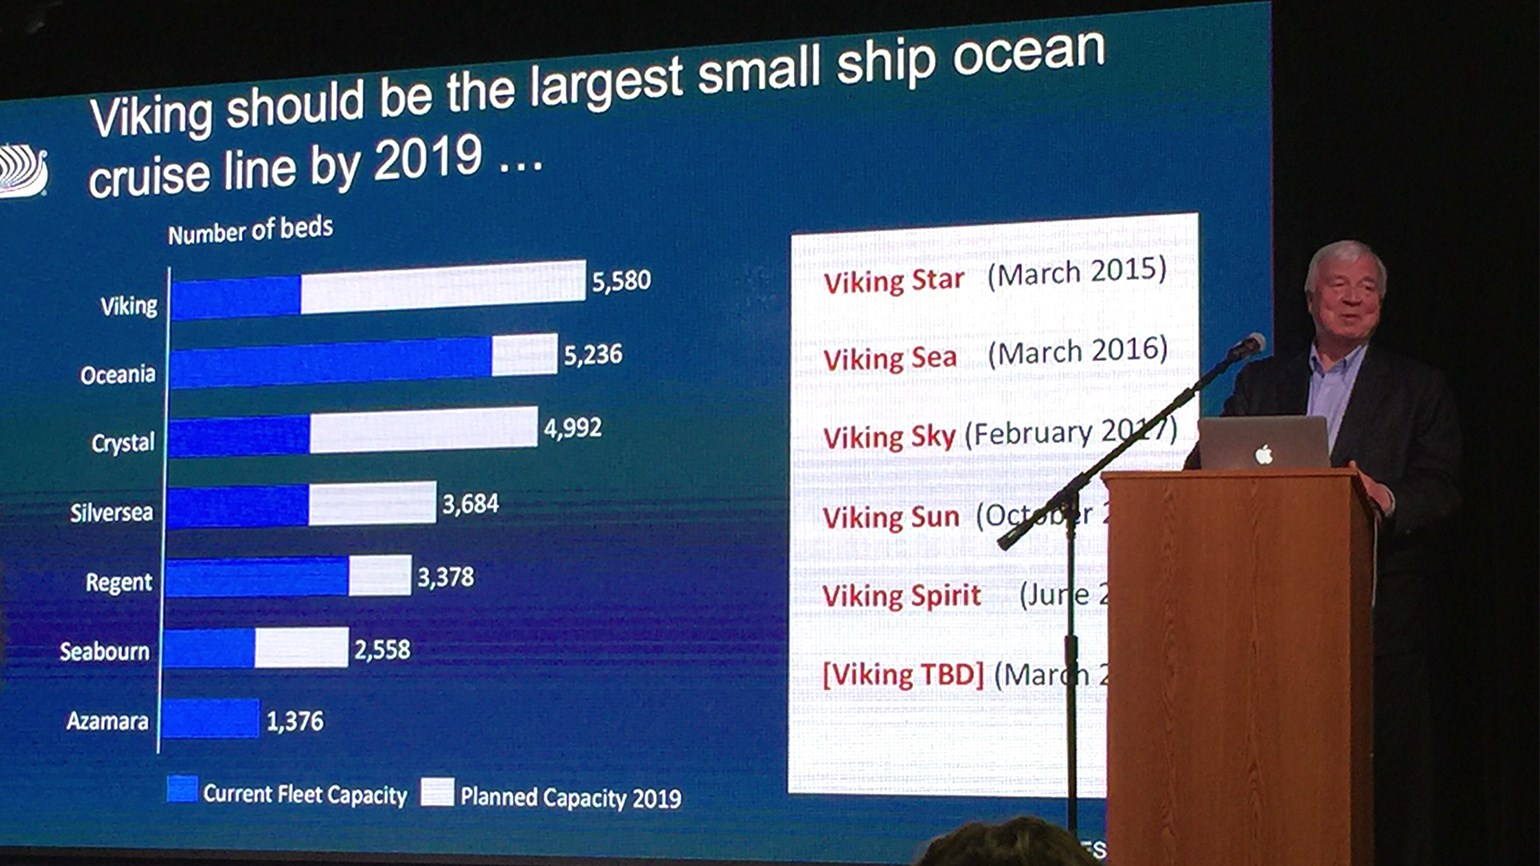 Viking to sail ocean cruises in Asia, Australia and Alaska